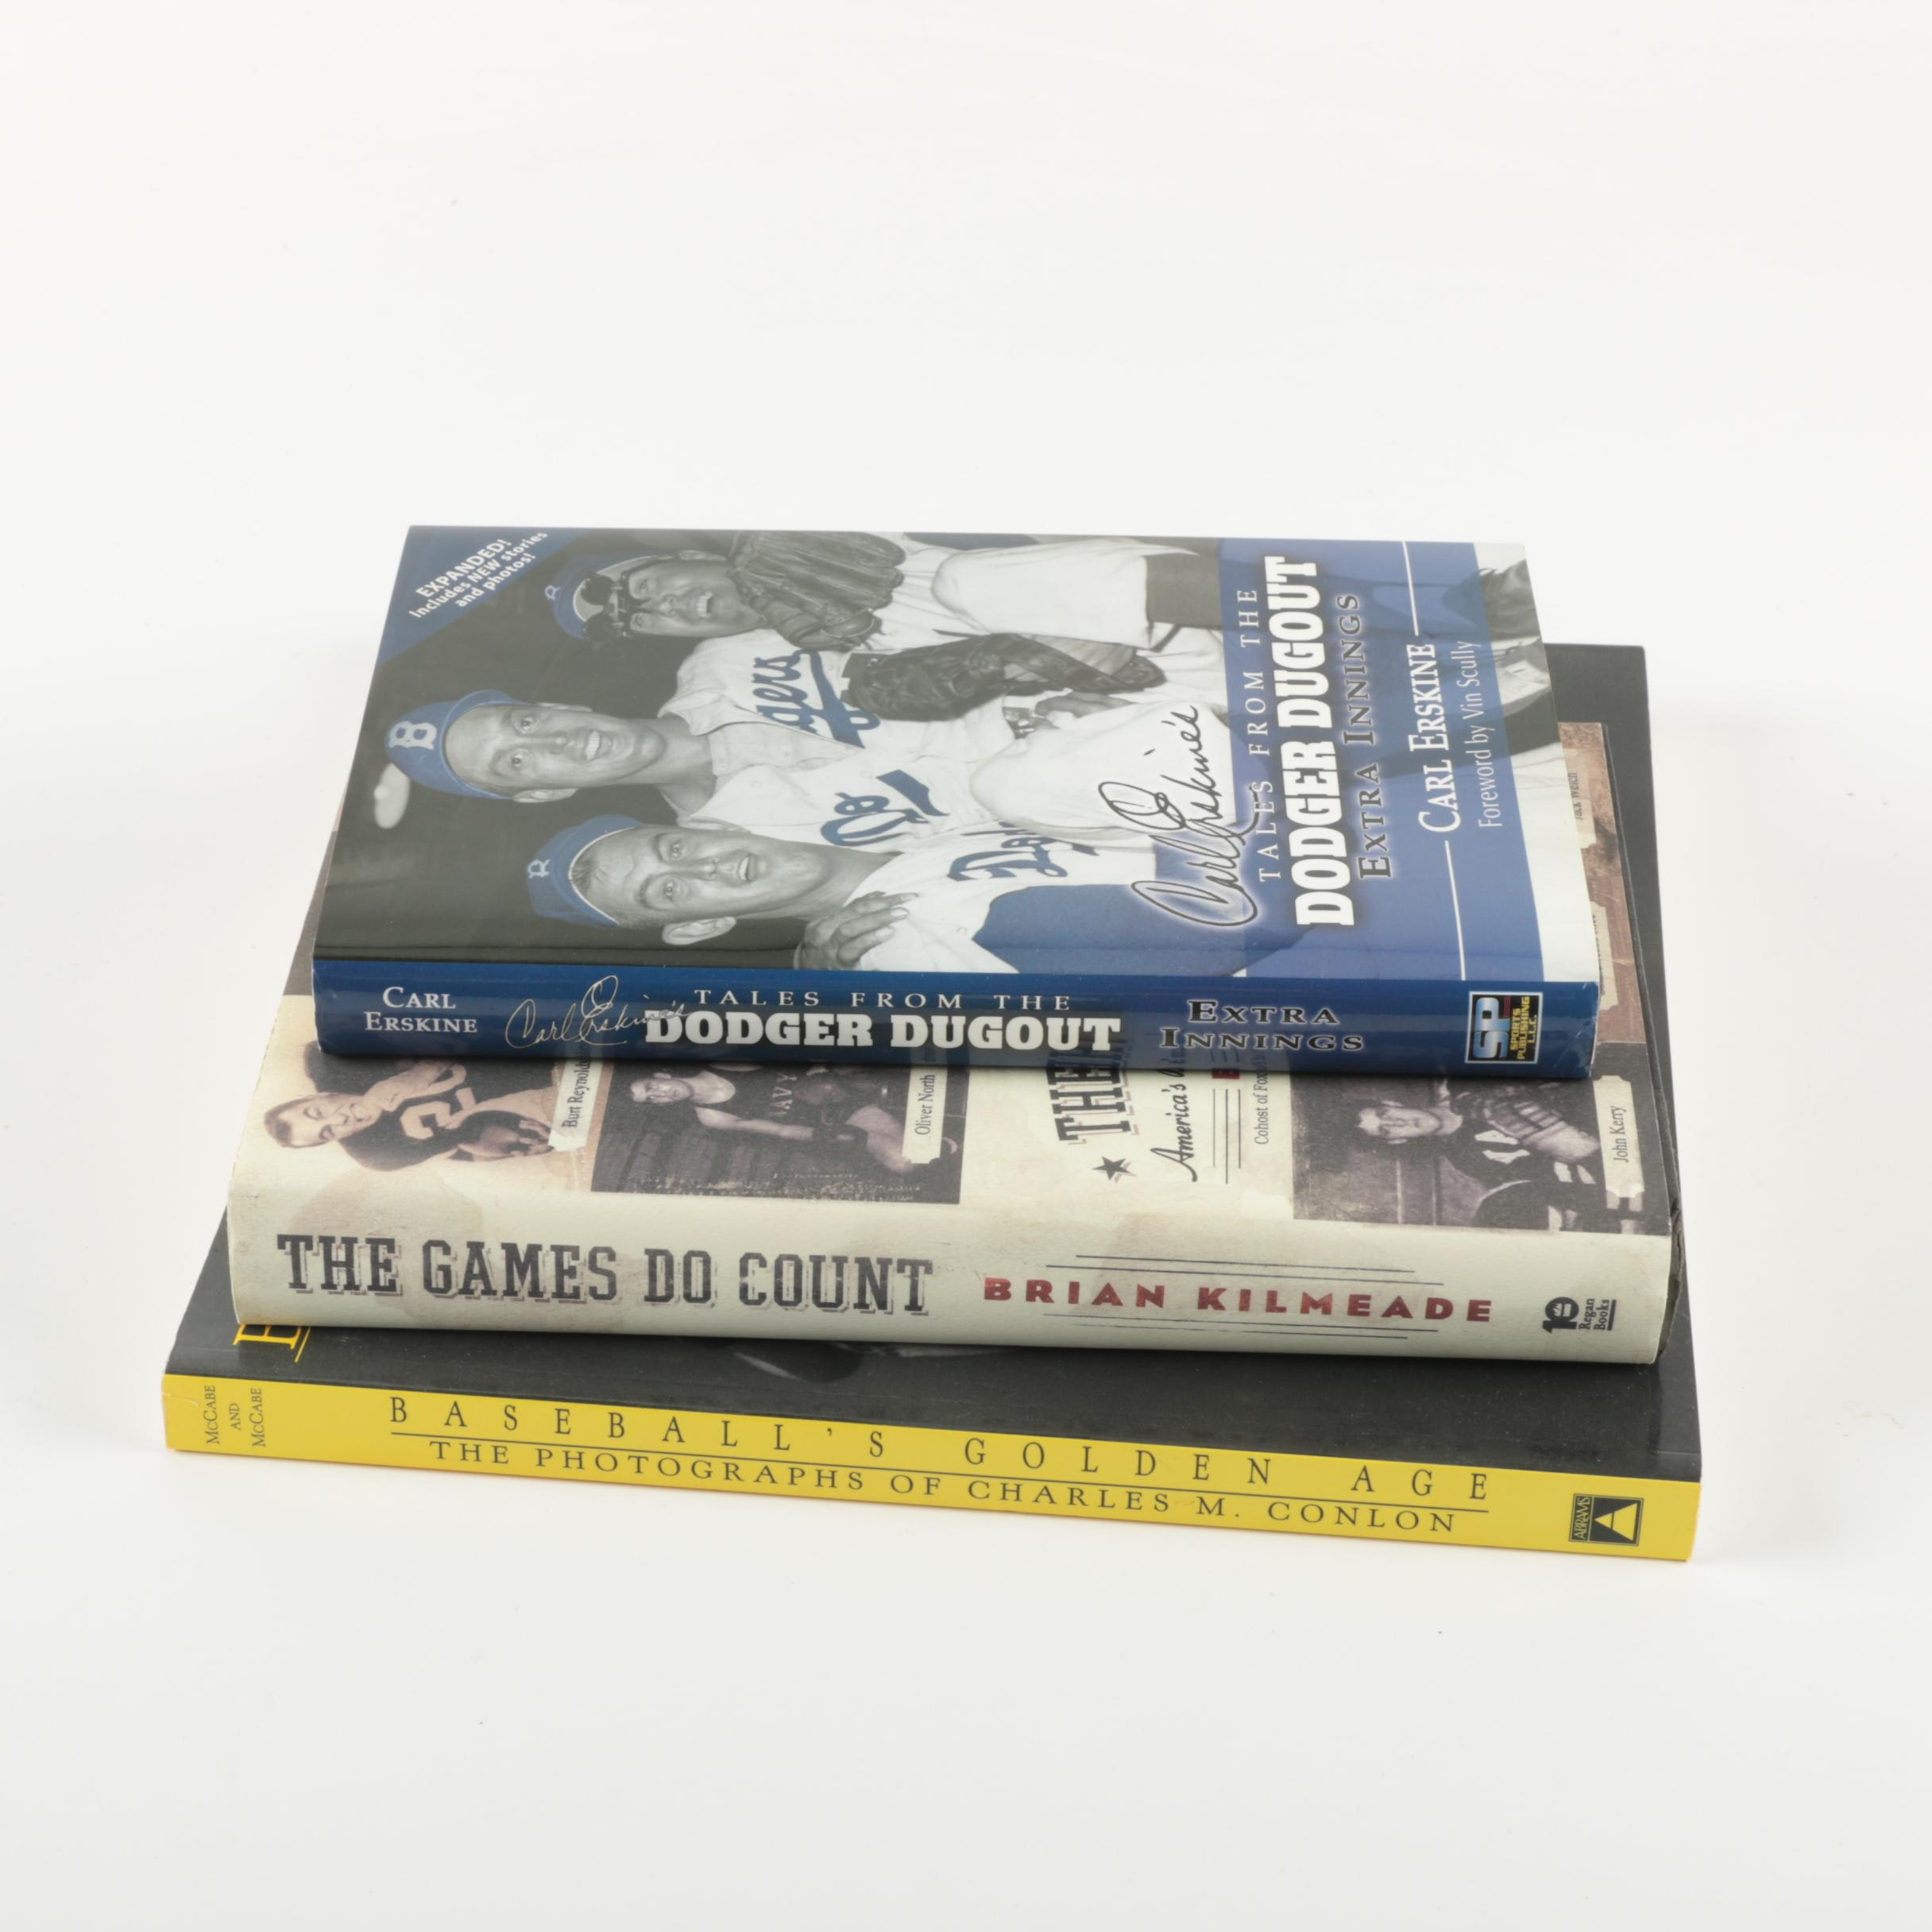 Baseball Books featuring Signed Copy by Carl Erskine